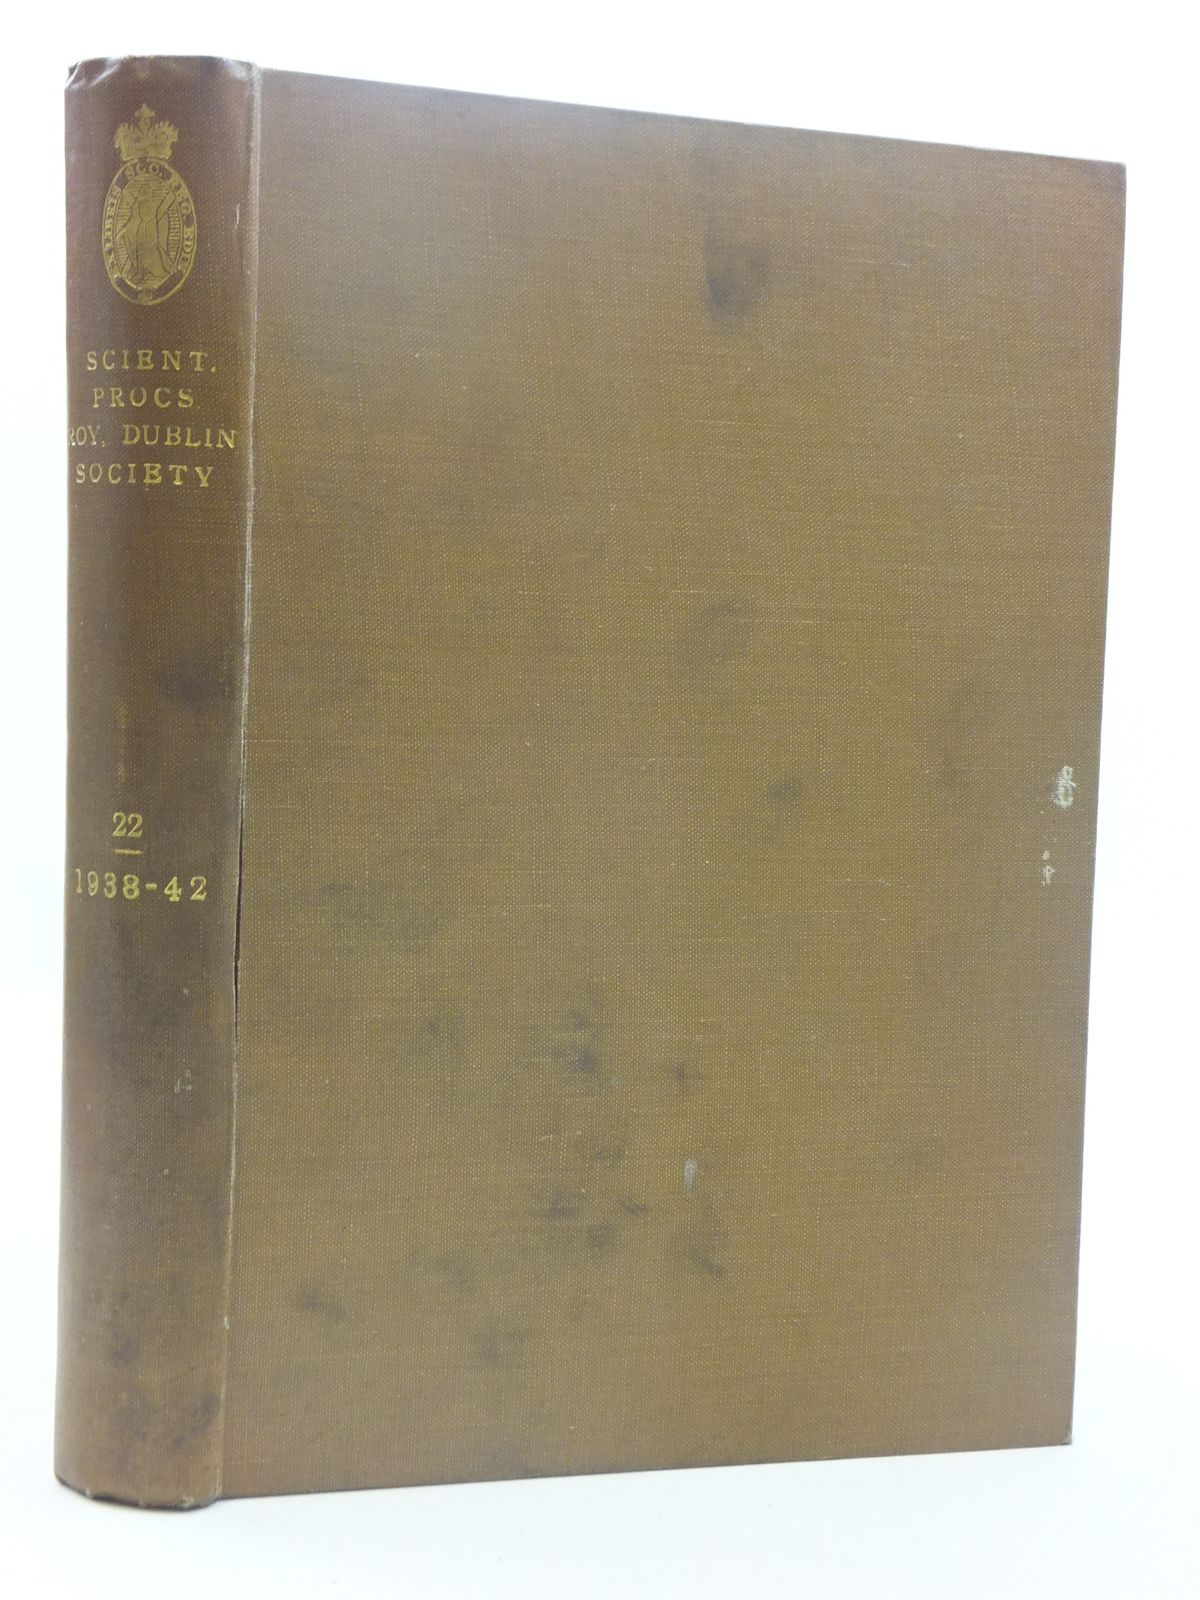 Photo of THE SCIENTIFIC PROCEEDINGS OF THE ROYAL DUBLIN SOCIETY VOLUME 22 (1938-42) published by Royal Dublin Society (STOCK CODE: 1605209)  for sale by Stella & Rose's Books